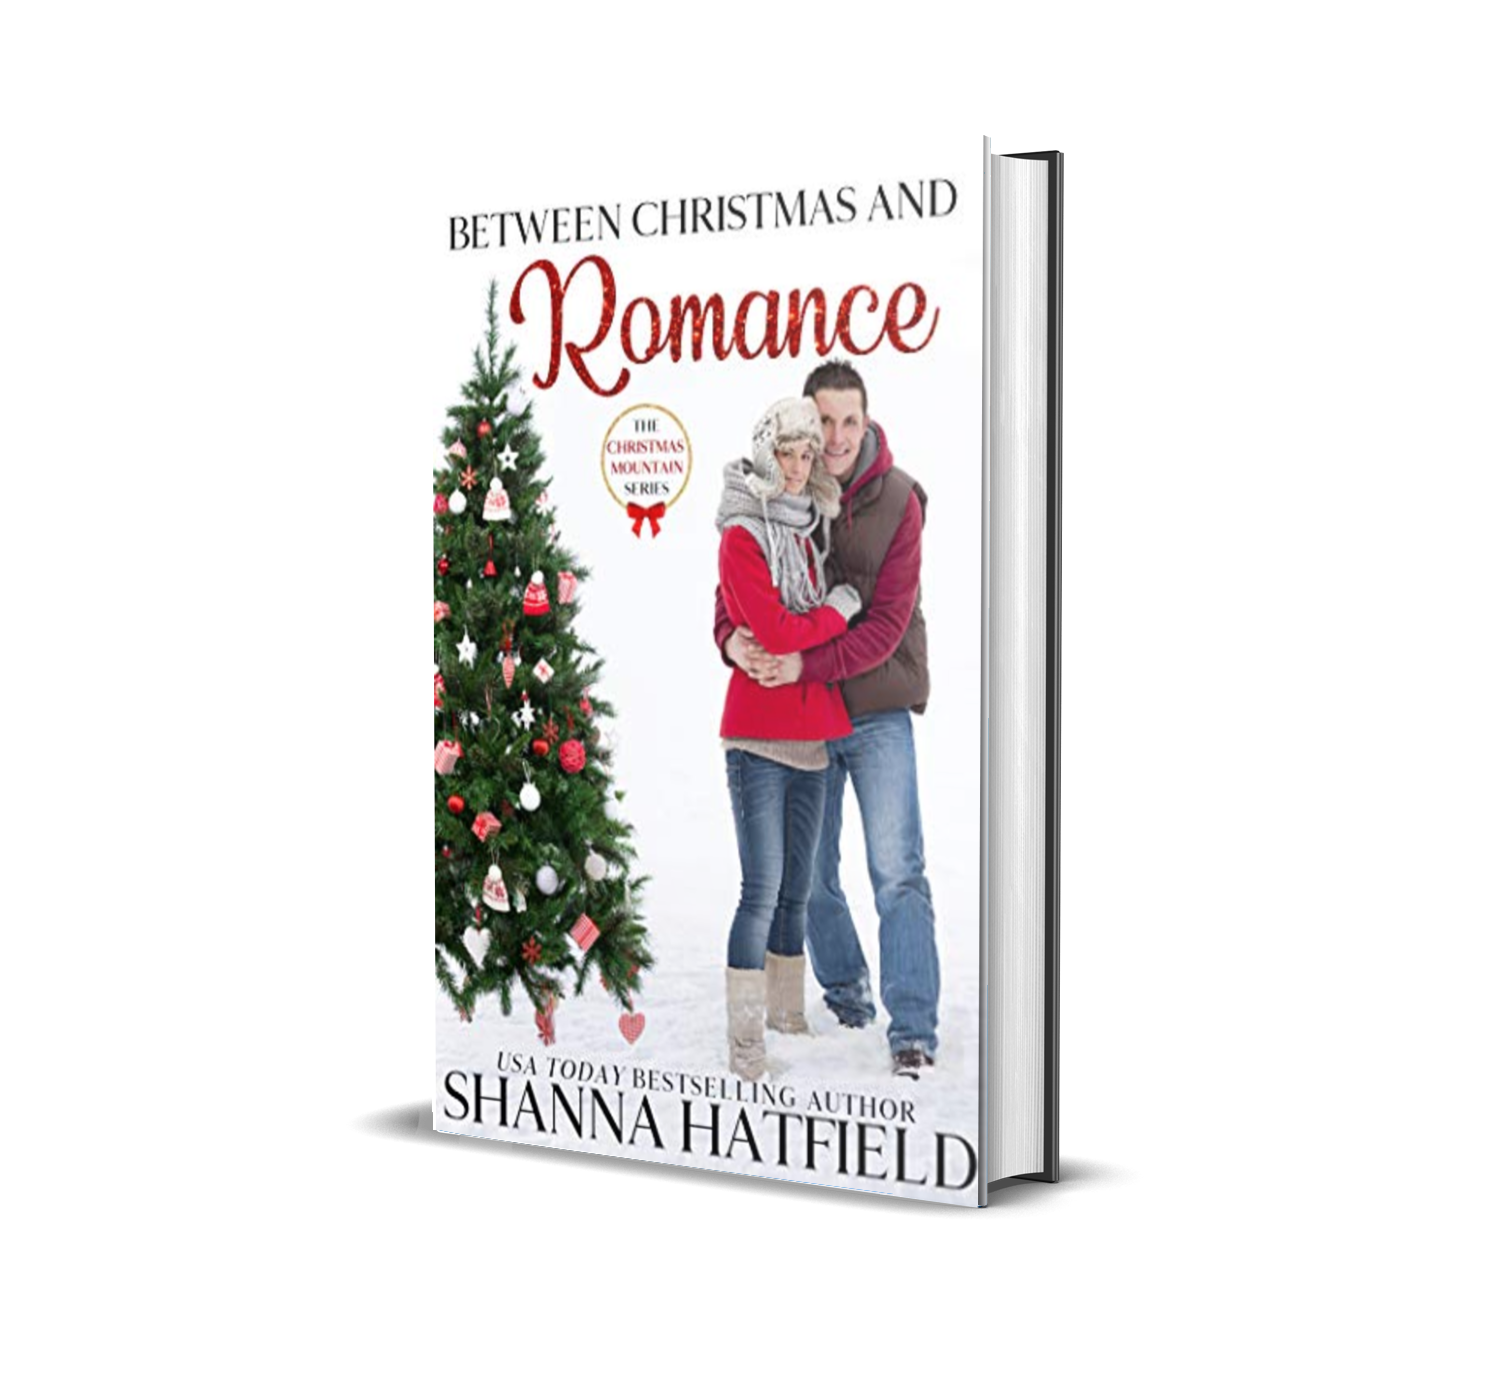 Between Christmas and Romance  by Shanna Hatfield